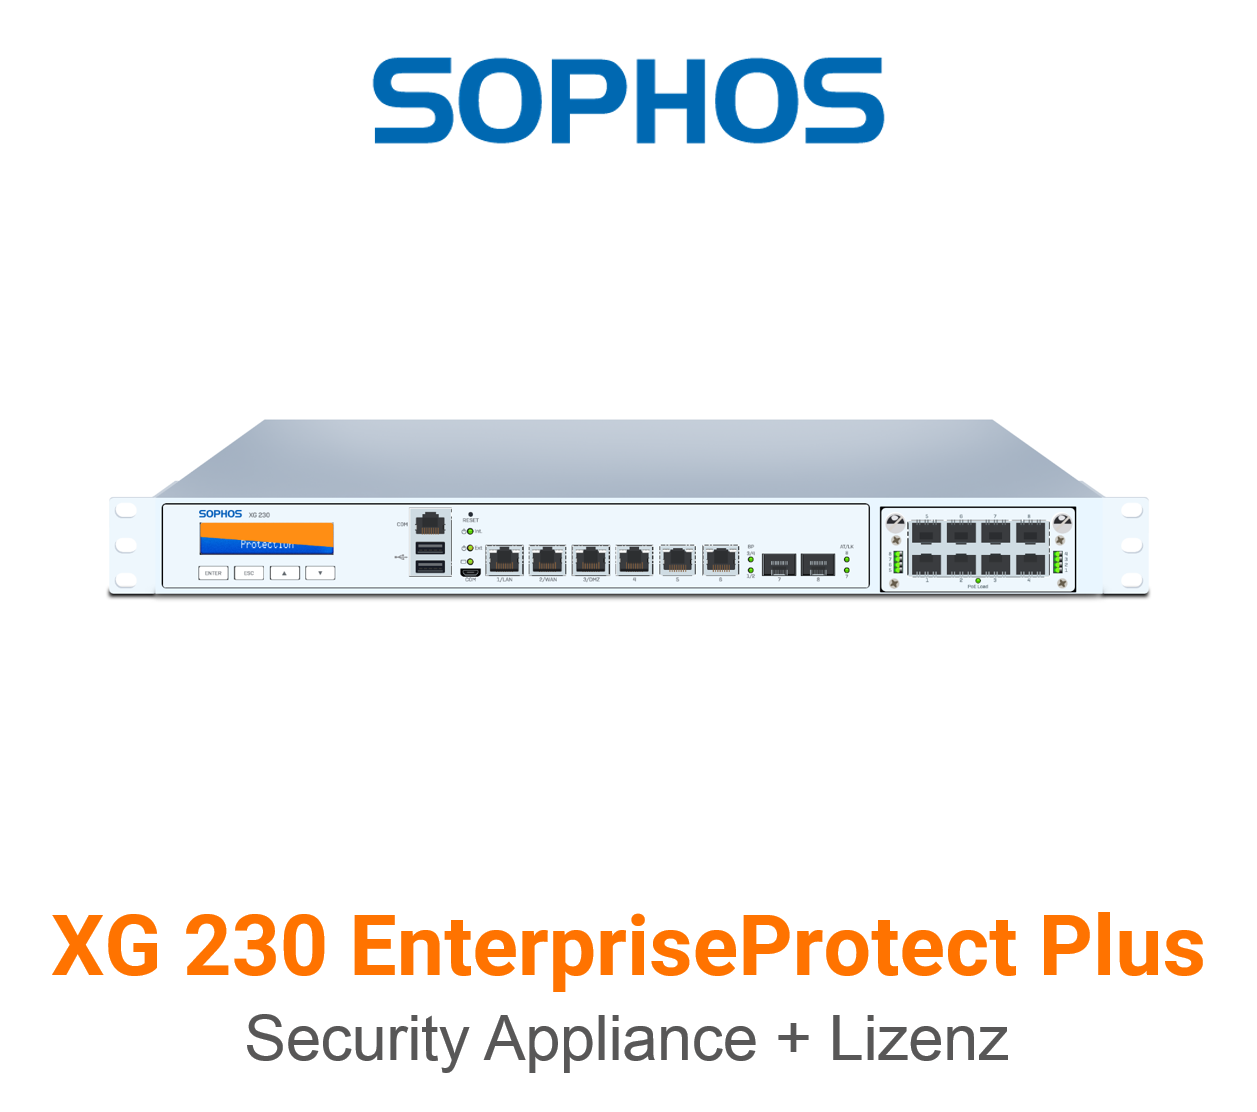 Sophos XG 230 EnterpriseProtect Plus Bundle (Hardware + Lizenz)